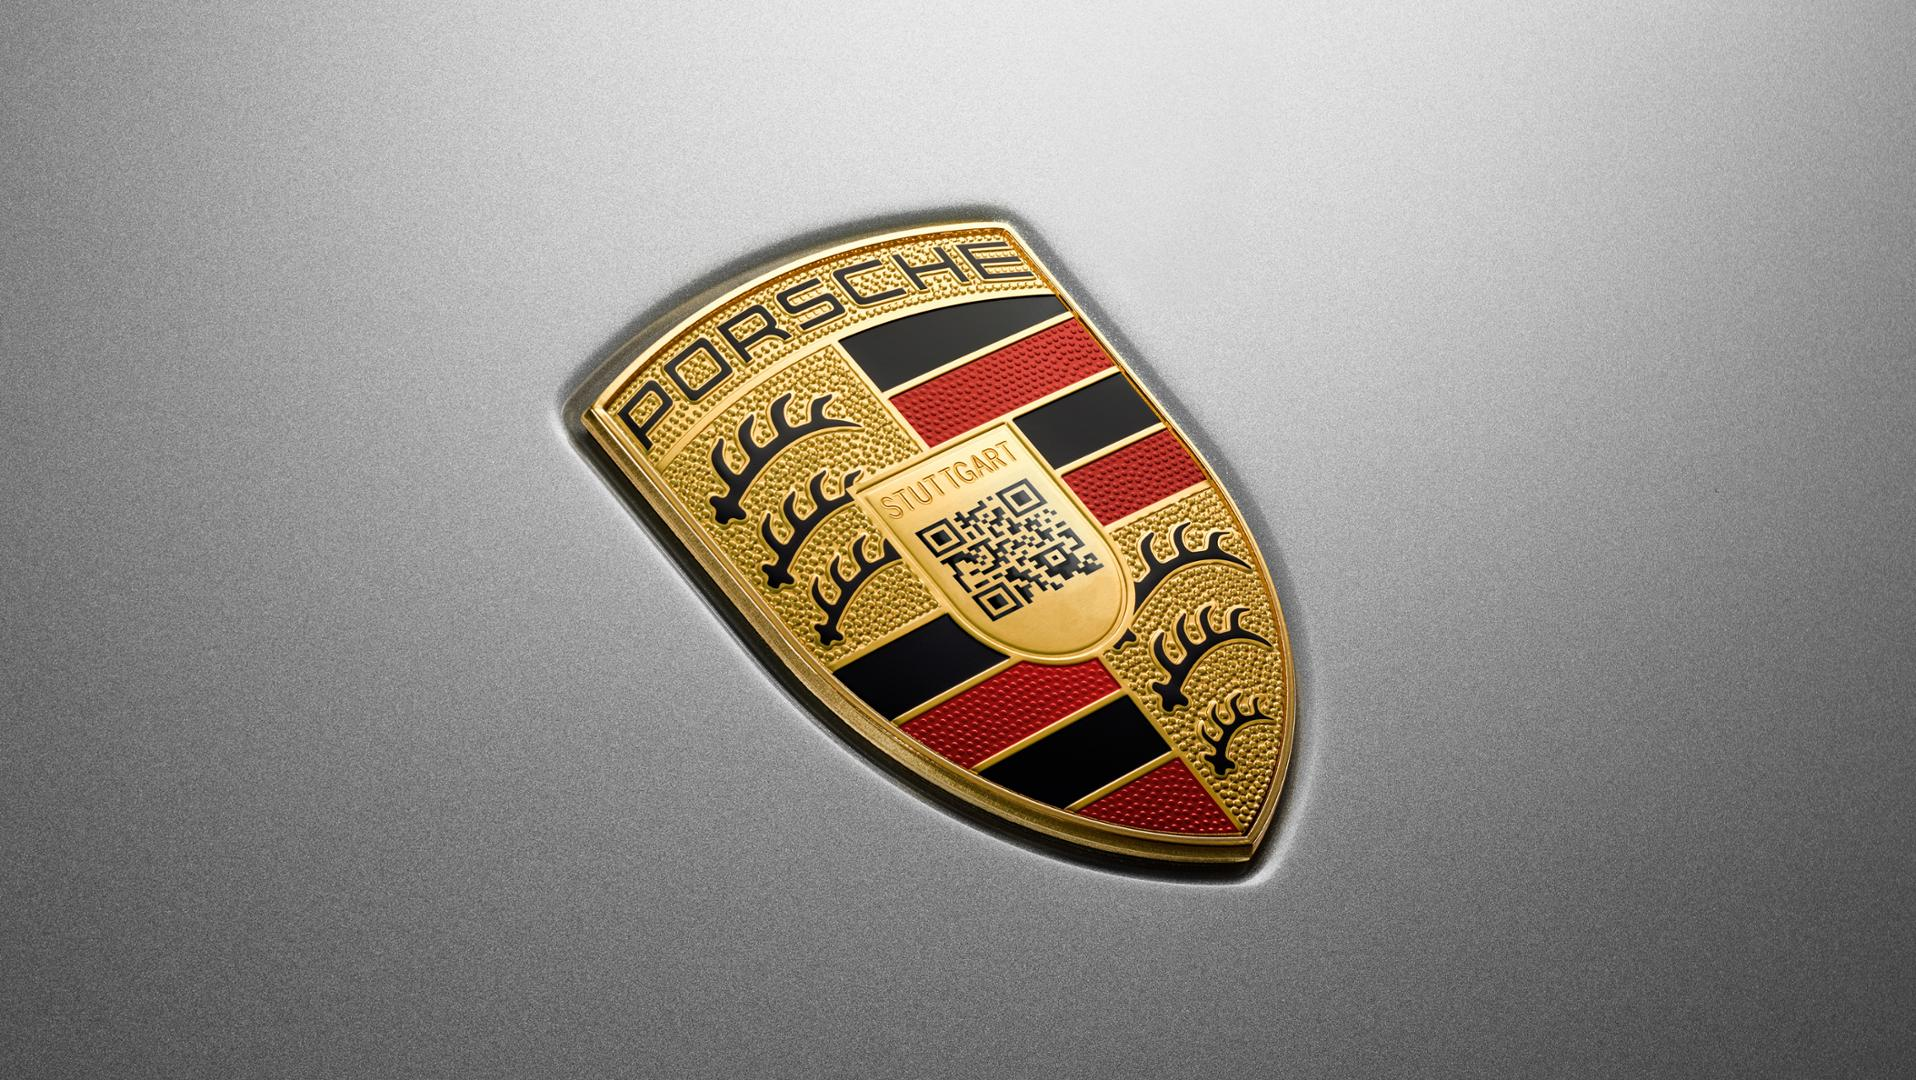 Porsche Taycan Logo Revealed, Crest Horse Replaced by QR